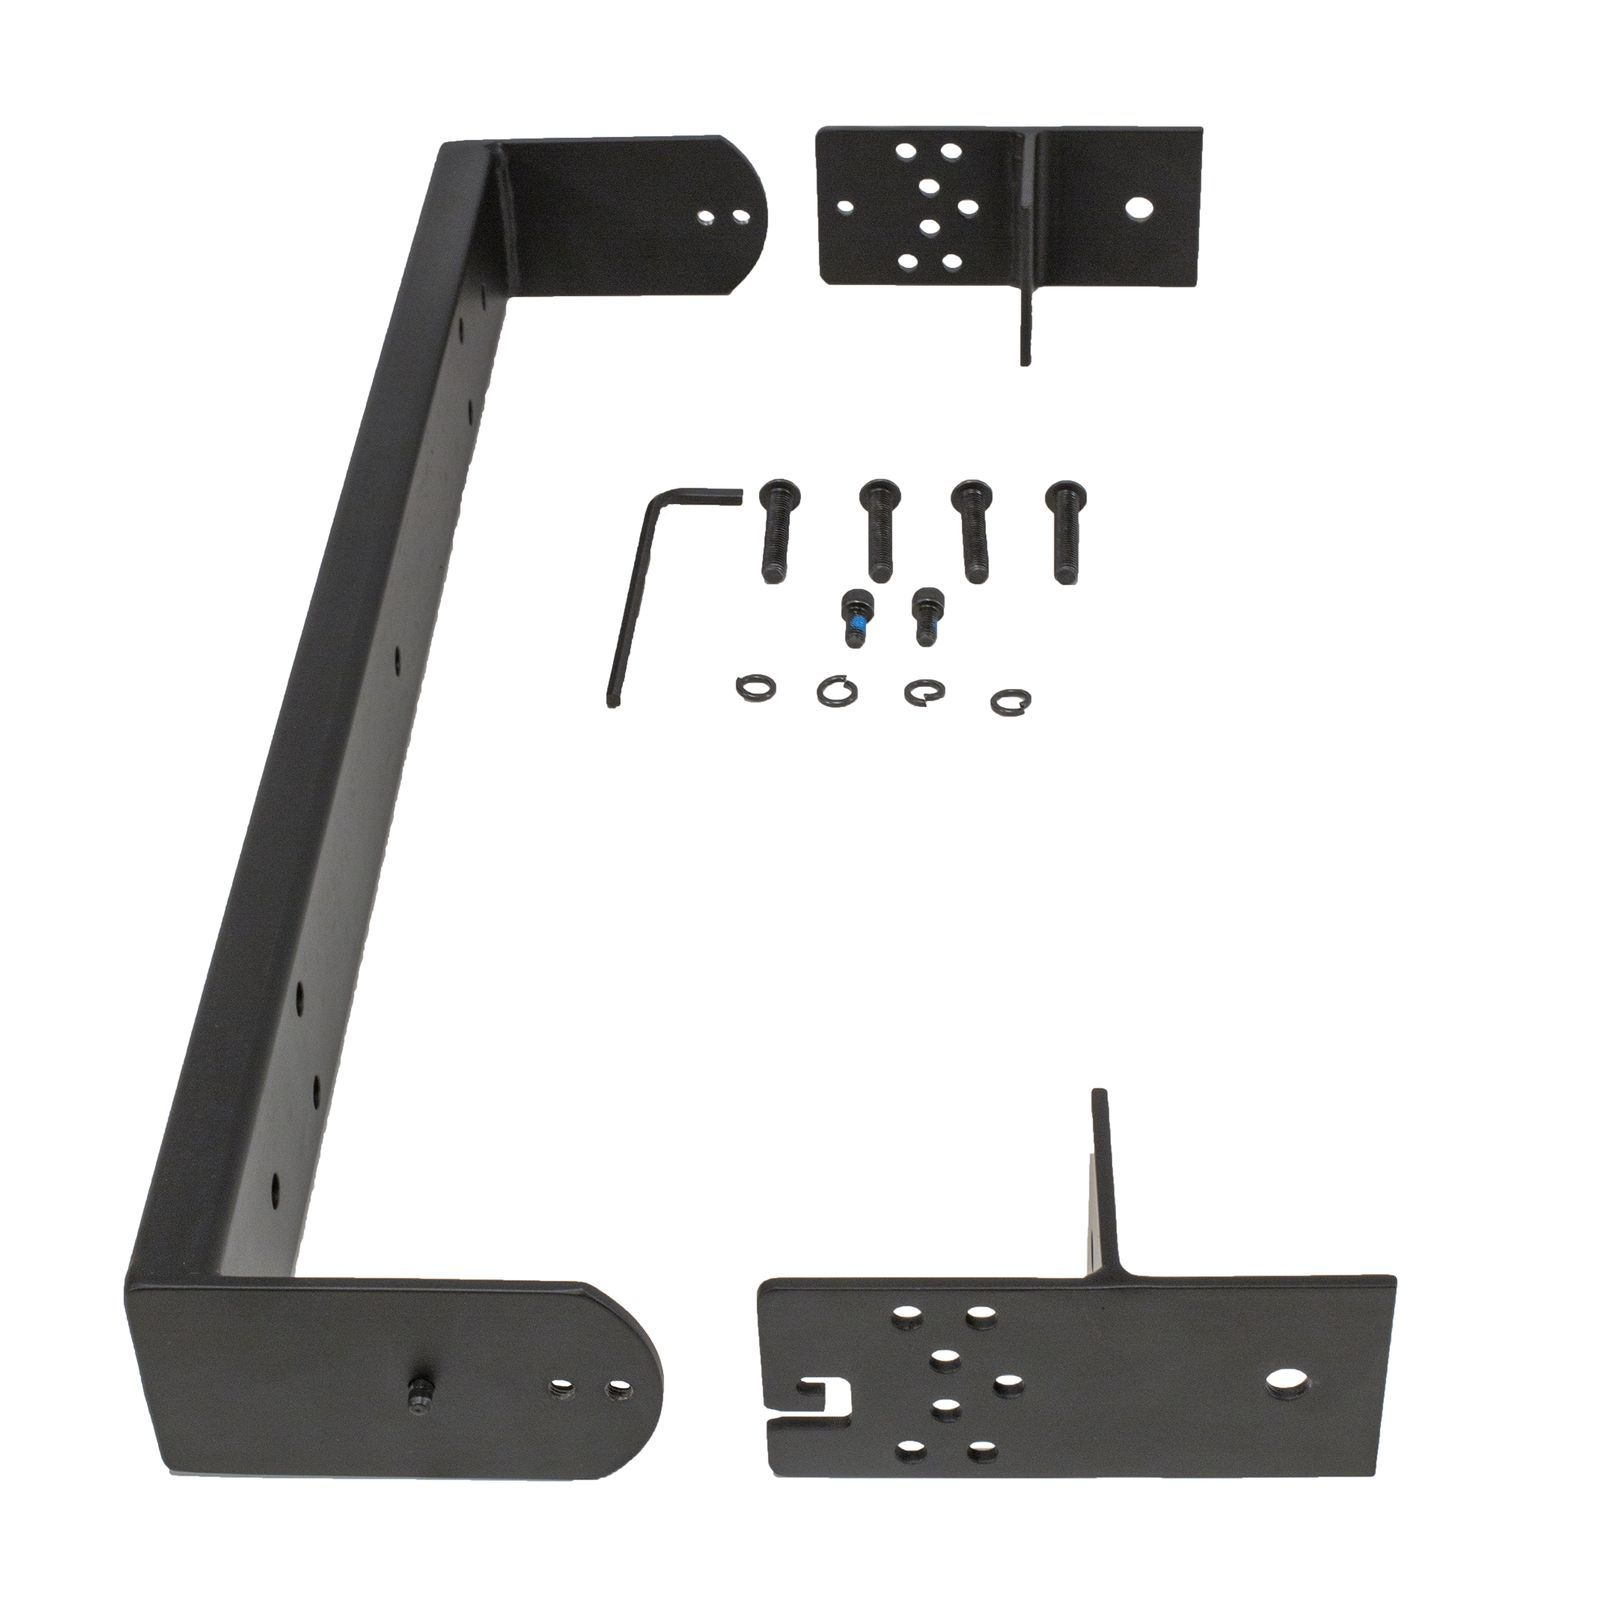 Electro Voice ETX-BRKT15 Wall Mount Bracket for ETX-15P Produktbillede